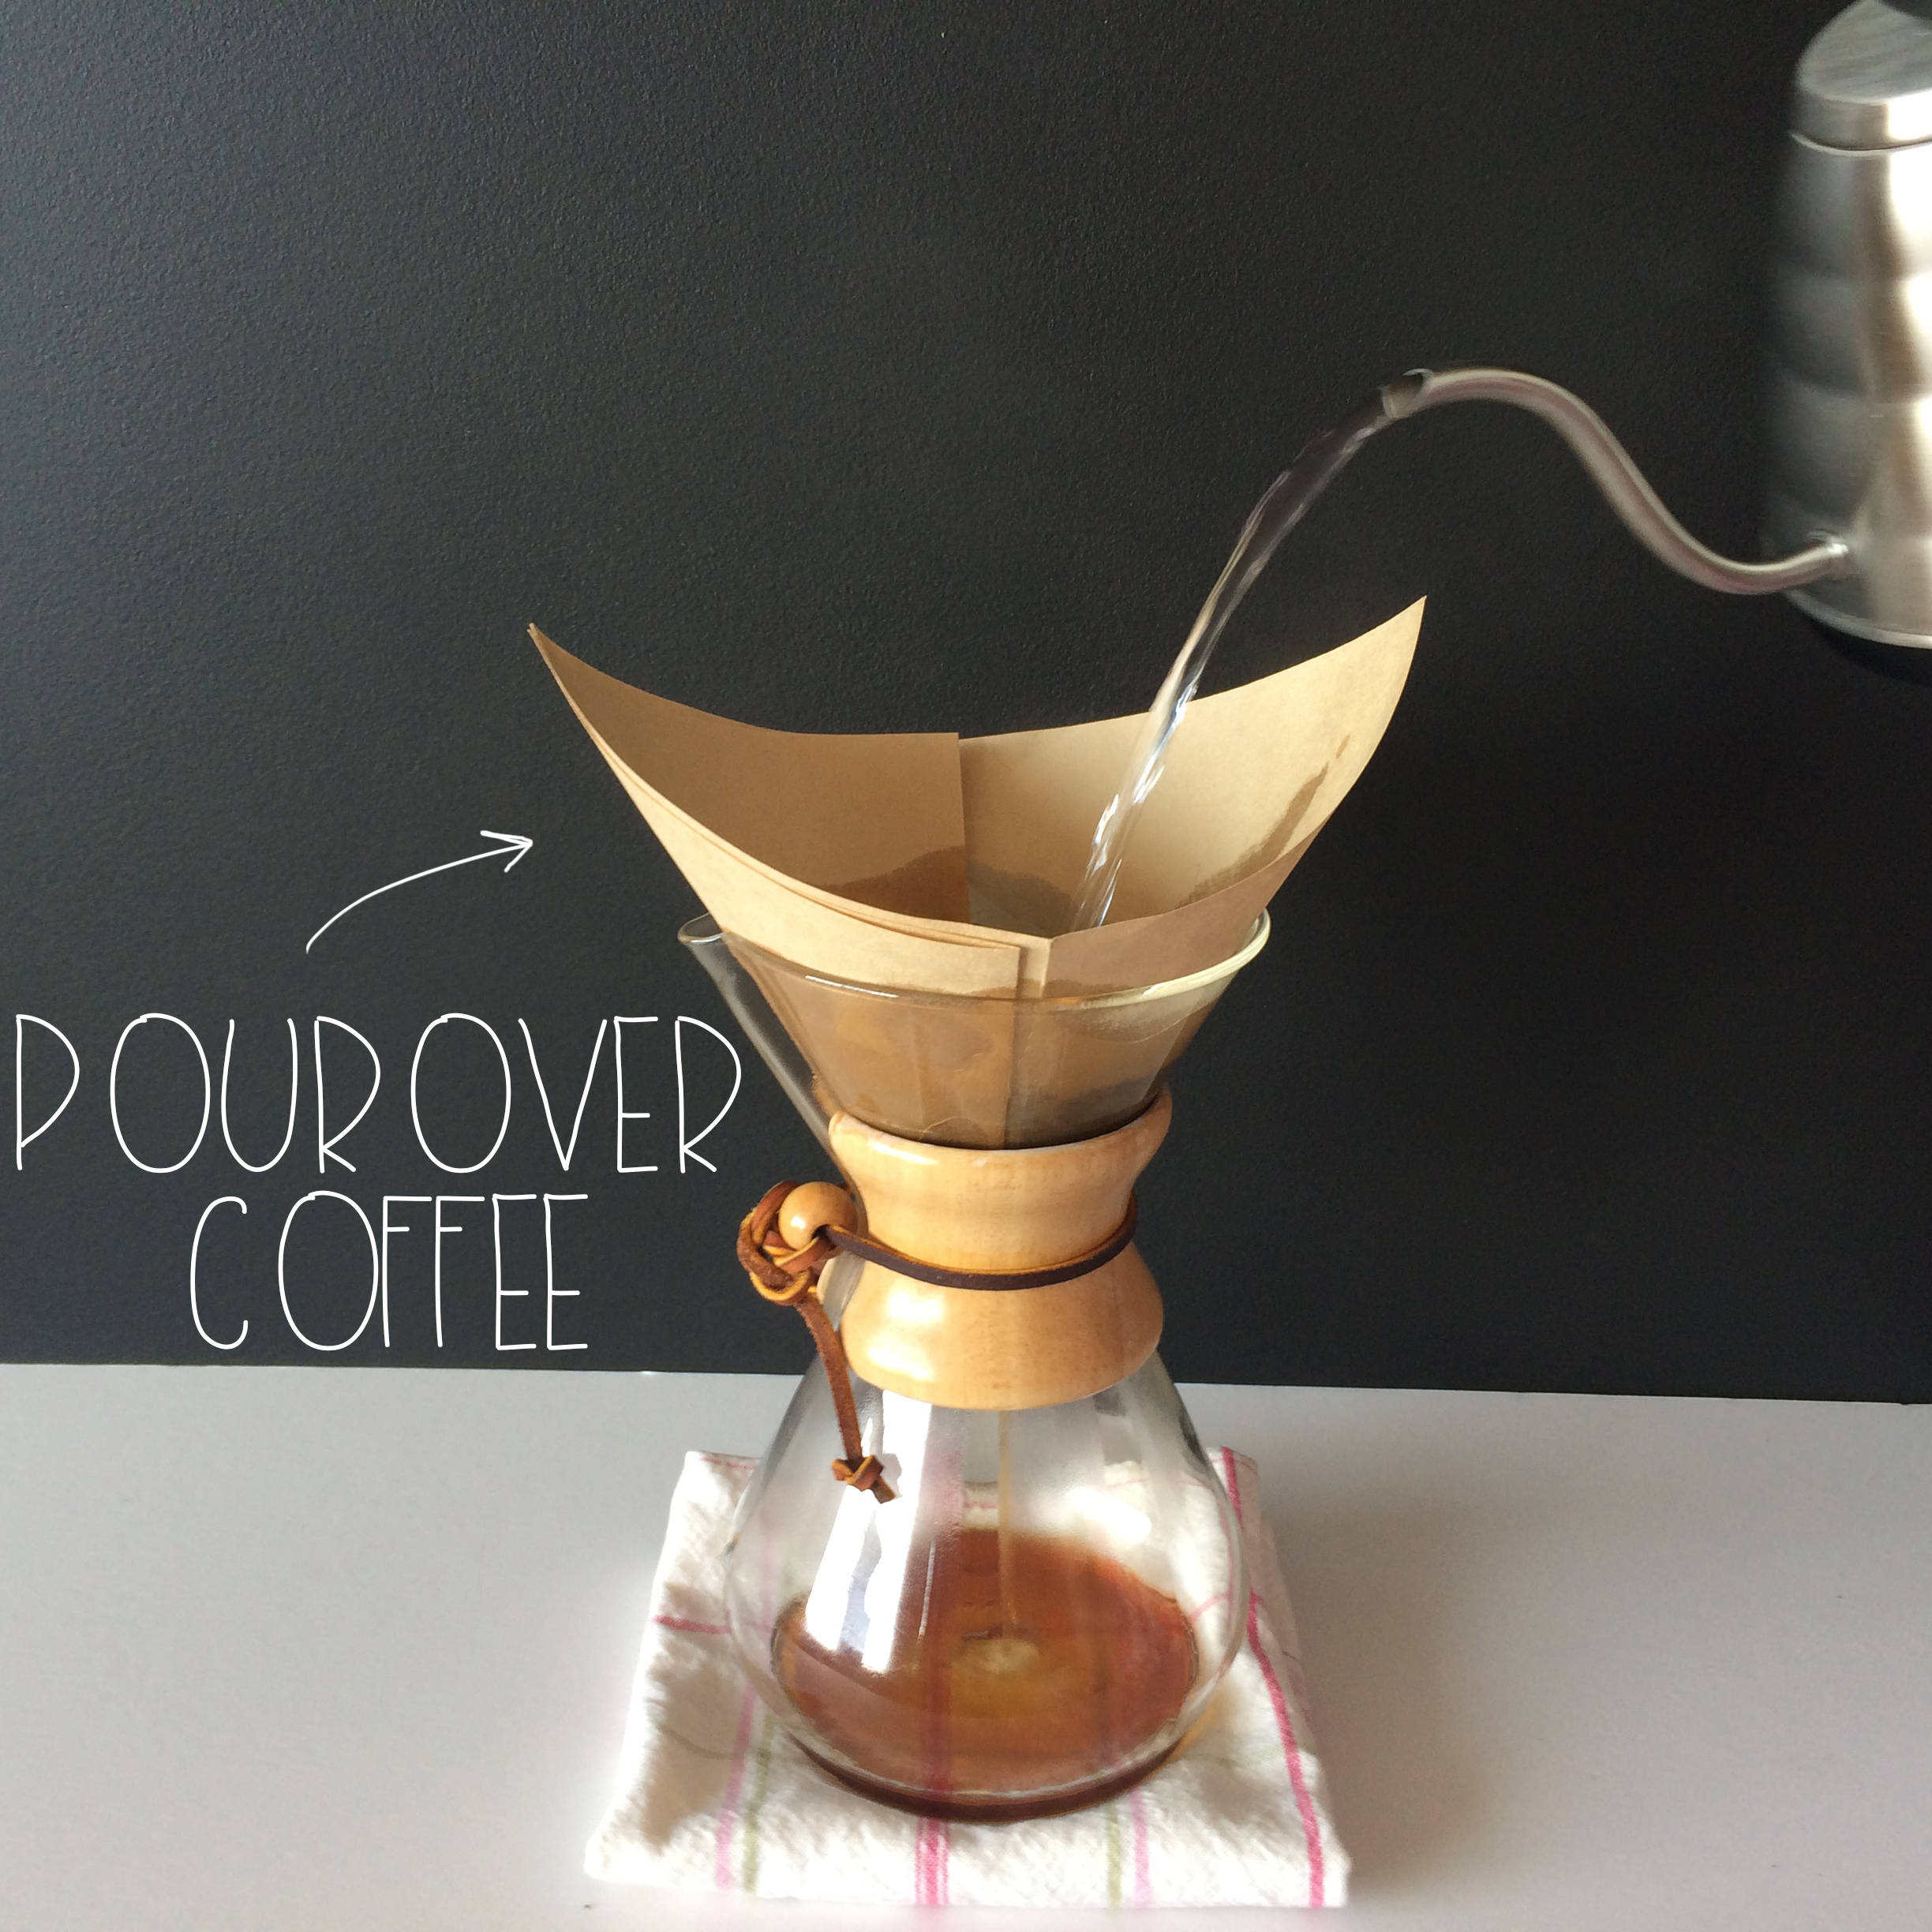 Pour Over Coffee | MrsAmberApple blog